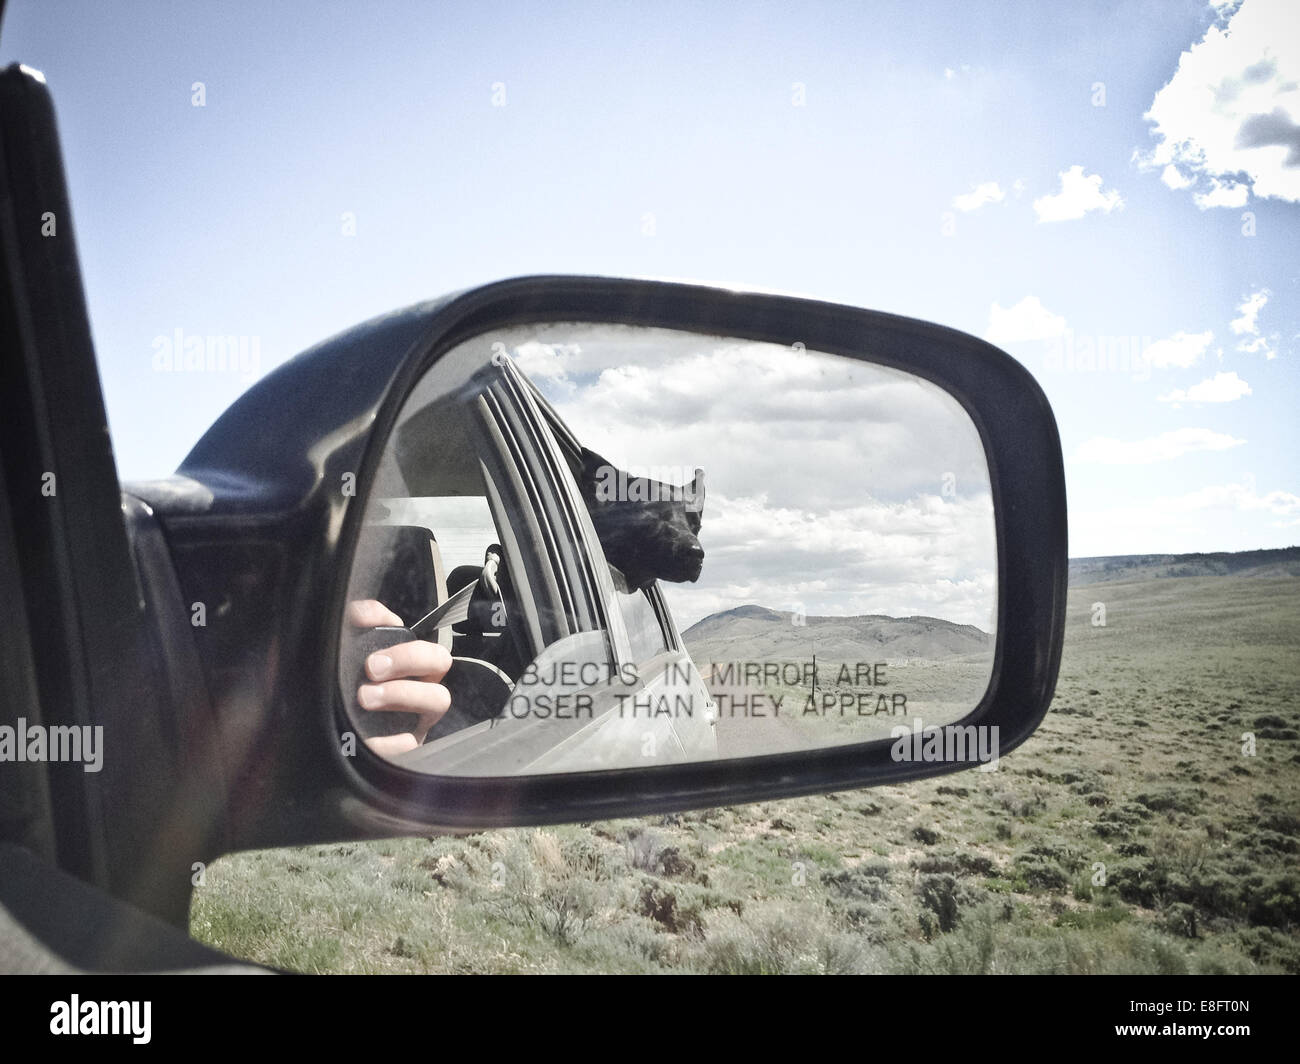 USA, Wyoming, Dog looking out car window - Stock Image